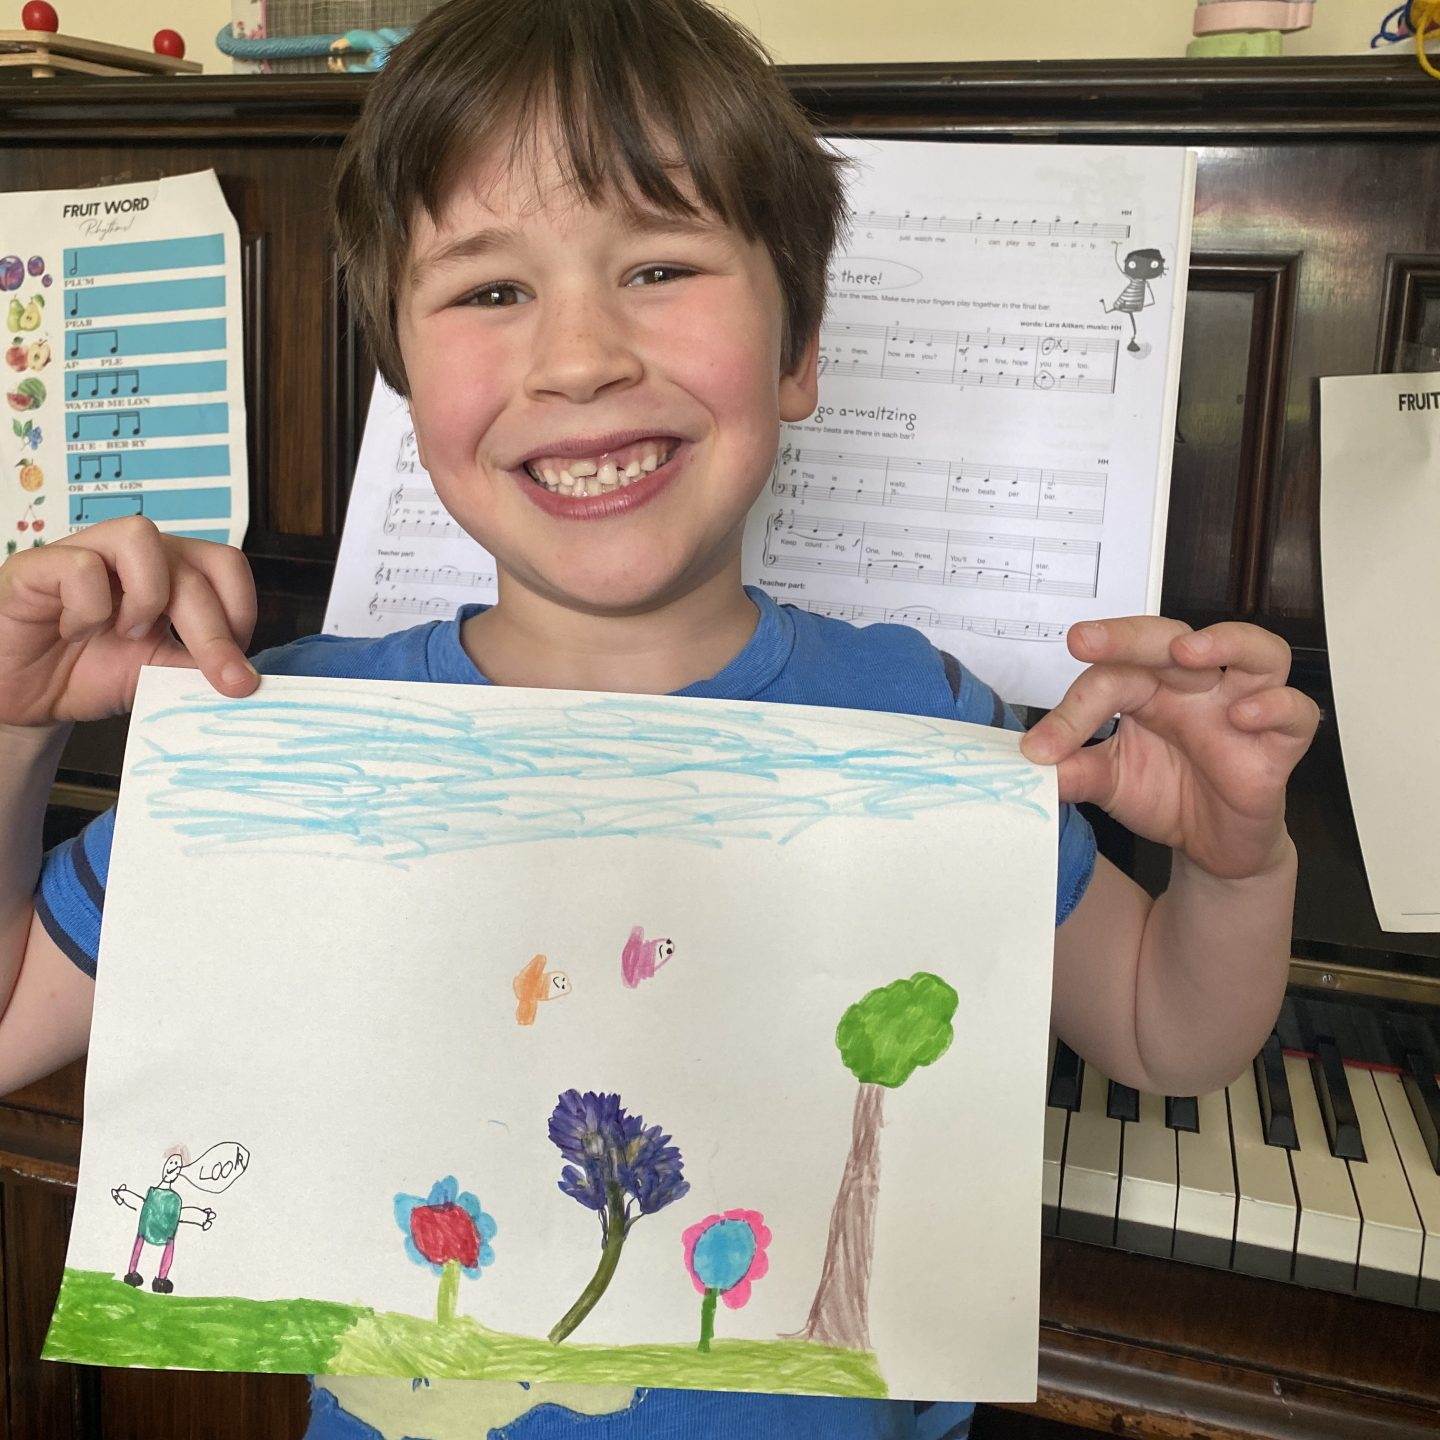 Home school creations   - a boy holding a flower picture and smiling proudly